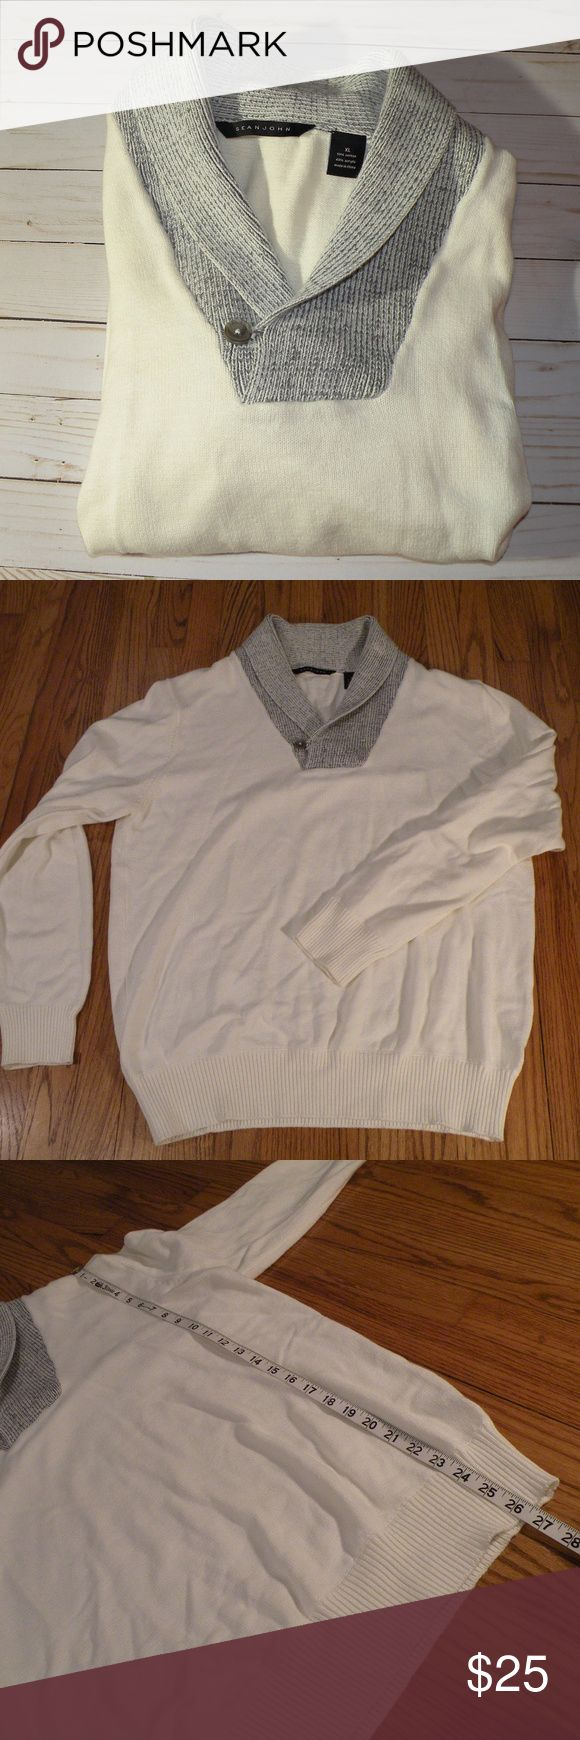 Sean John Cowl Neck Sweater Men's white sweater with grey cowl neck Size XL Excellent used condition Measurements in photos 20% off bundles of 2 or more SHIPS FAST! Sean John Sweaters